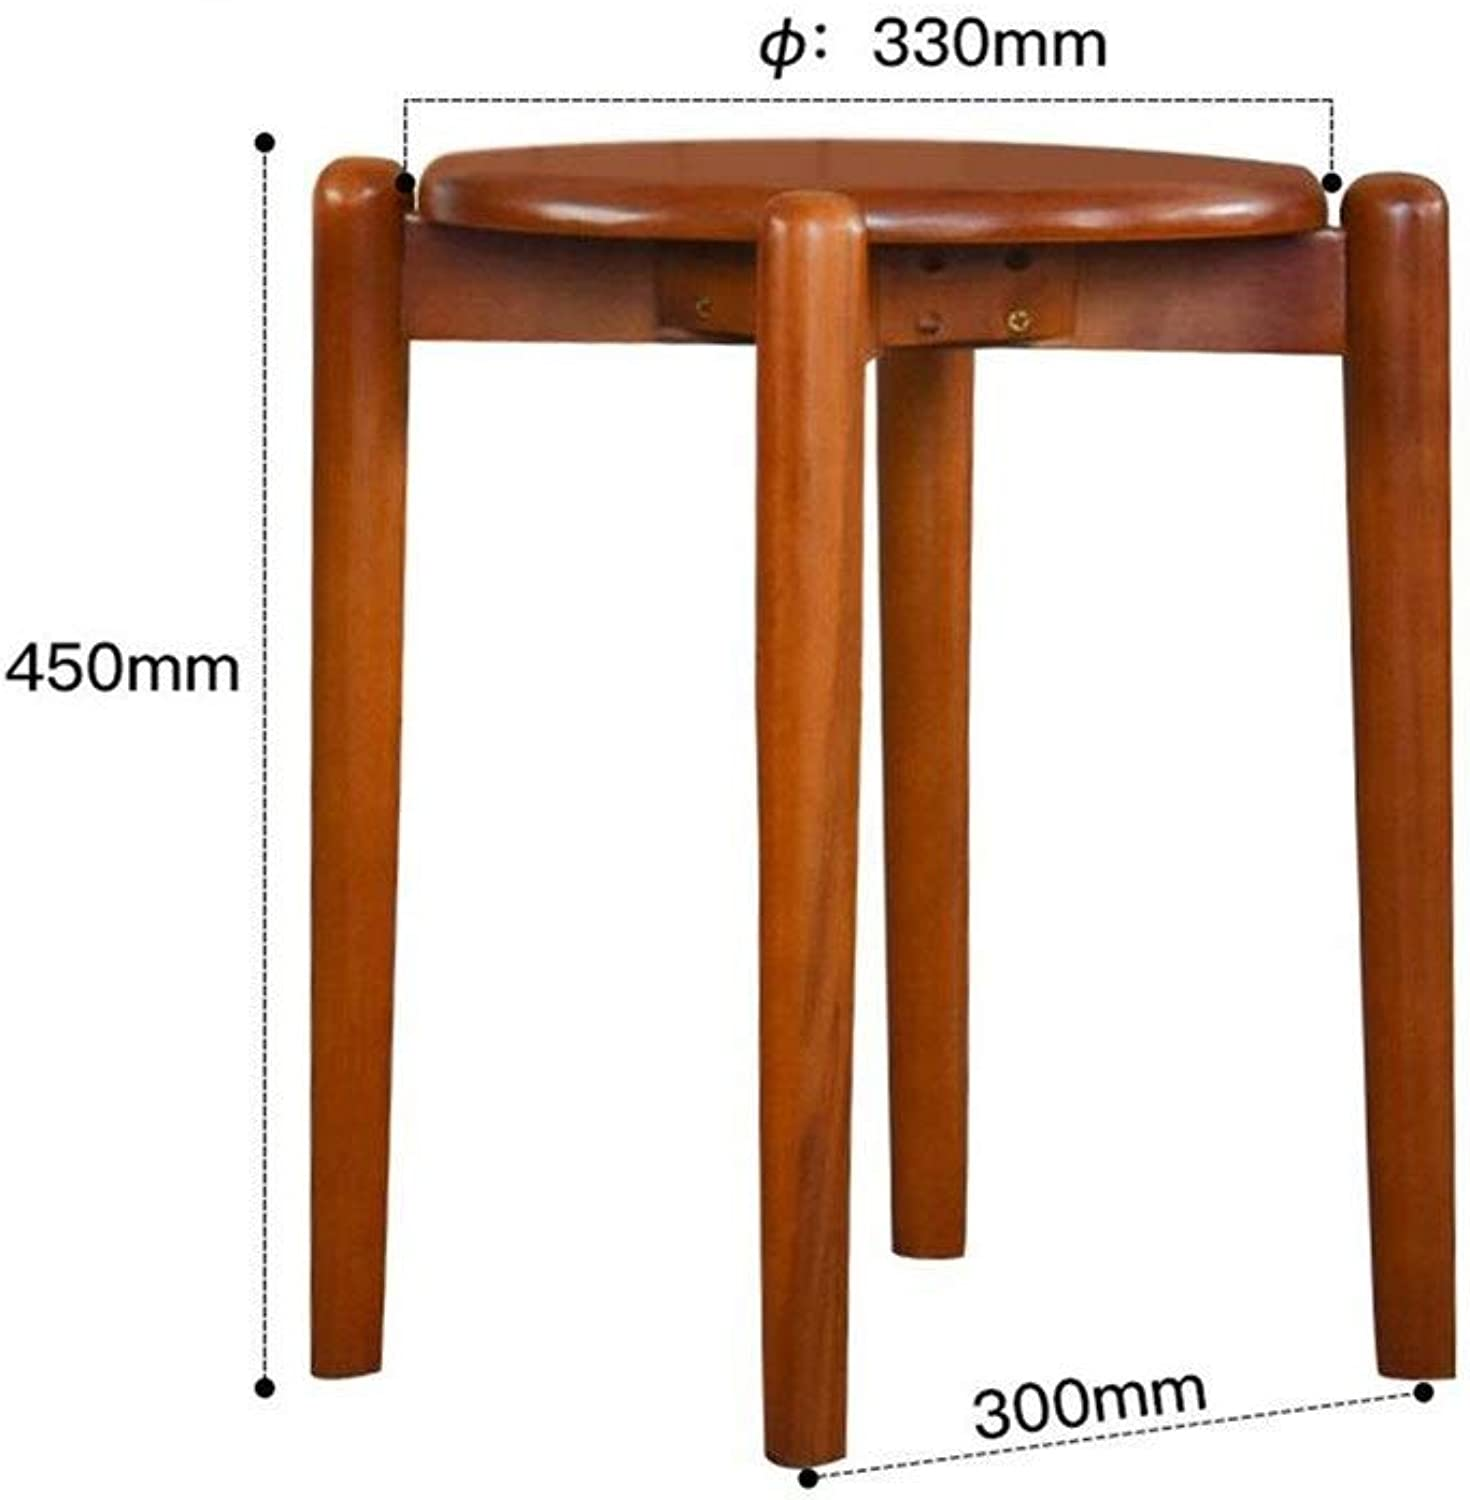 European Chair Solid Wood Stool, Simple and Stylish Wooden Stool, Living Room, Dining Chair, Chair, Stool, Adult Stool (color   D)